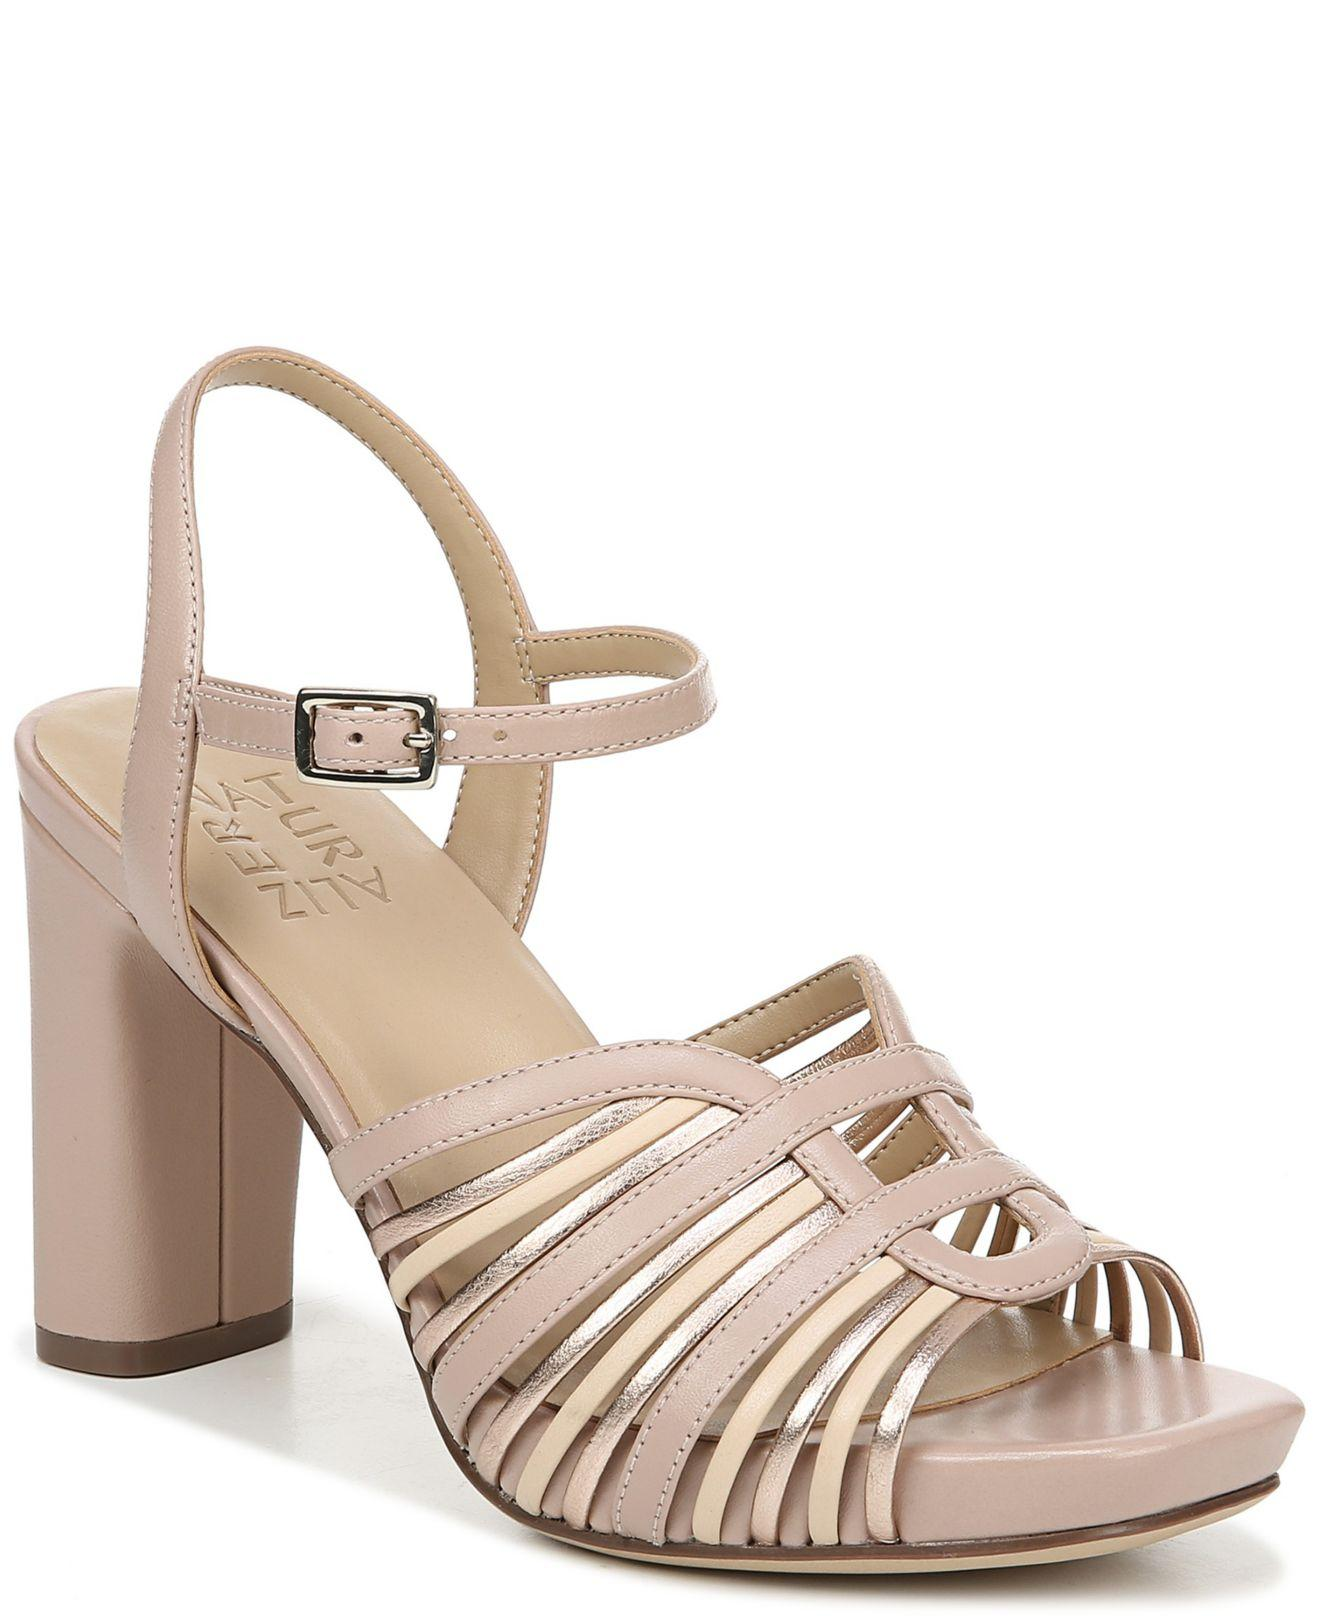 f3c311fab929 Naturalizer. Women s Jules Ankle Strap Sandals